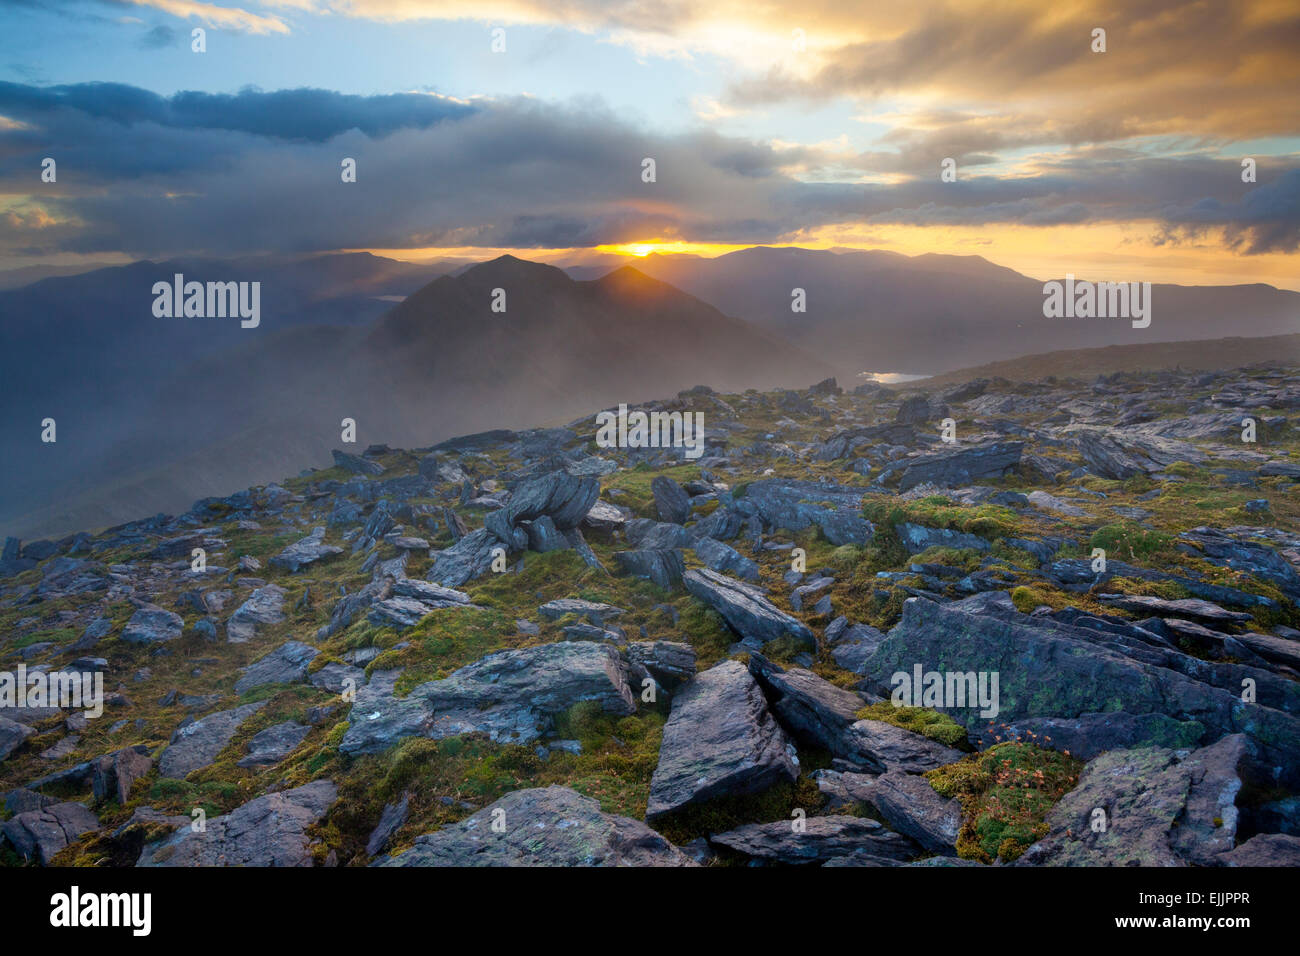 Sunset over Caher, Ireland's third highest mountain, from Carrauntoohil, MacGillycuddy's Reeks, County Kerry, - Stock Image